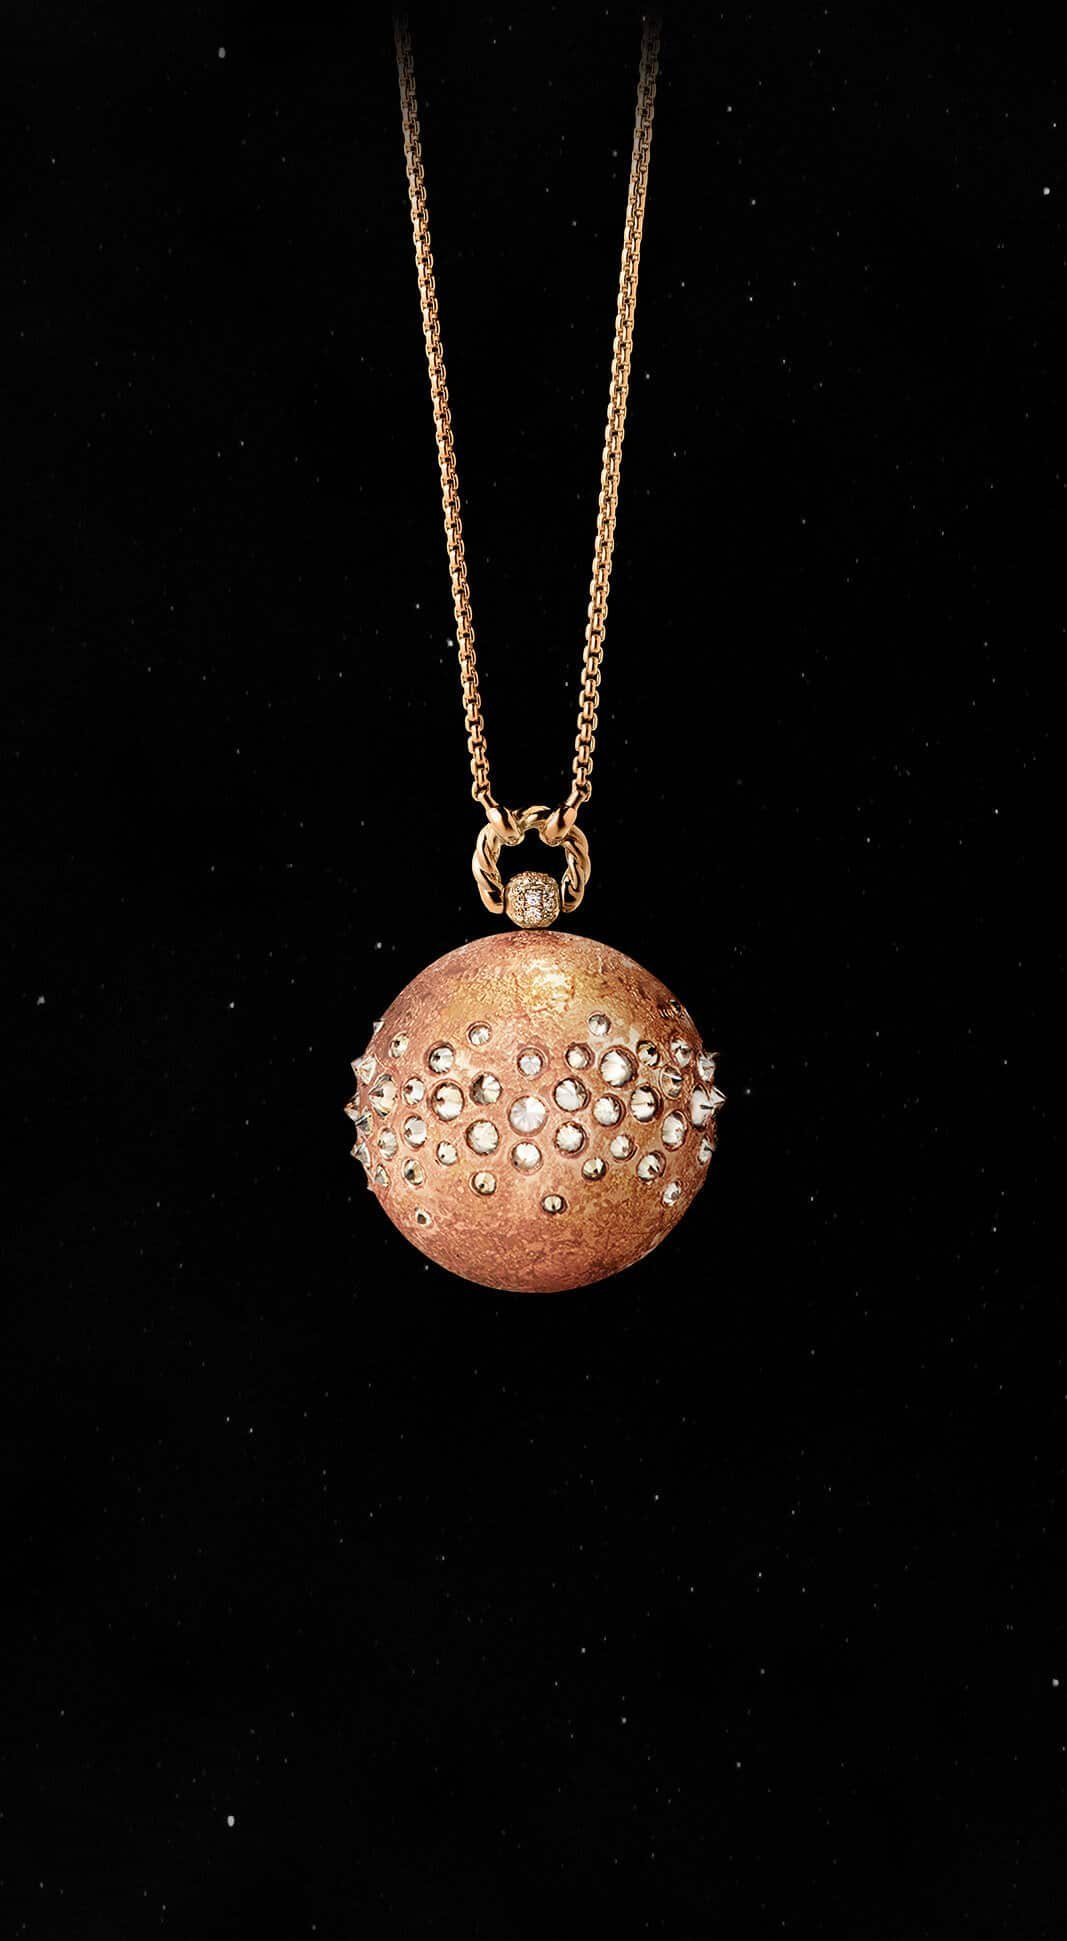 A color photo shows the David Yurman Solari Planet Mars pendant necklace in front of a starry night sky. The pendant is crafted from 18K rose gold with cognac diamonds.